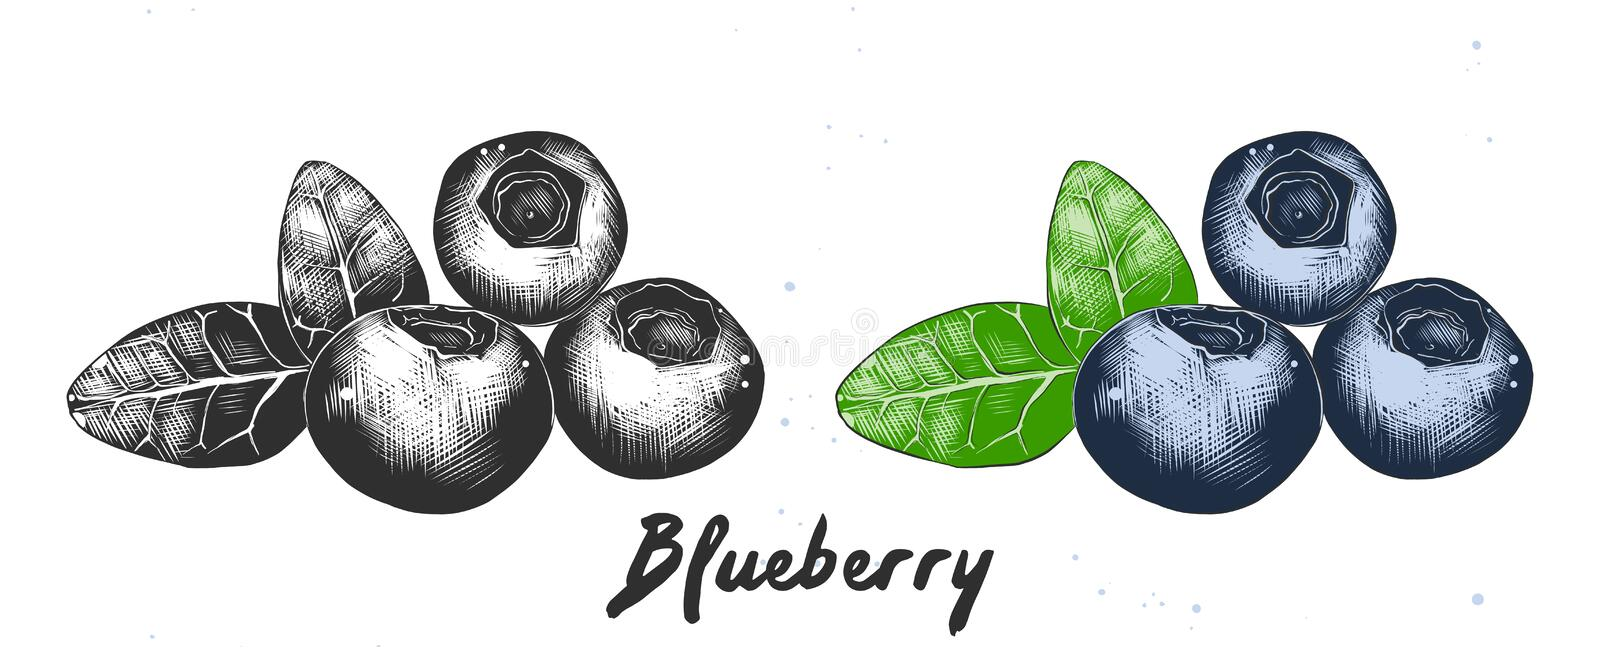 Hand drawn sketch of blueberry in monochrome and colorful. Detailed etching food drawing. Vector engraved style illustration for posters, decoration, packaging stock illustration